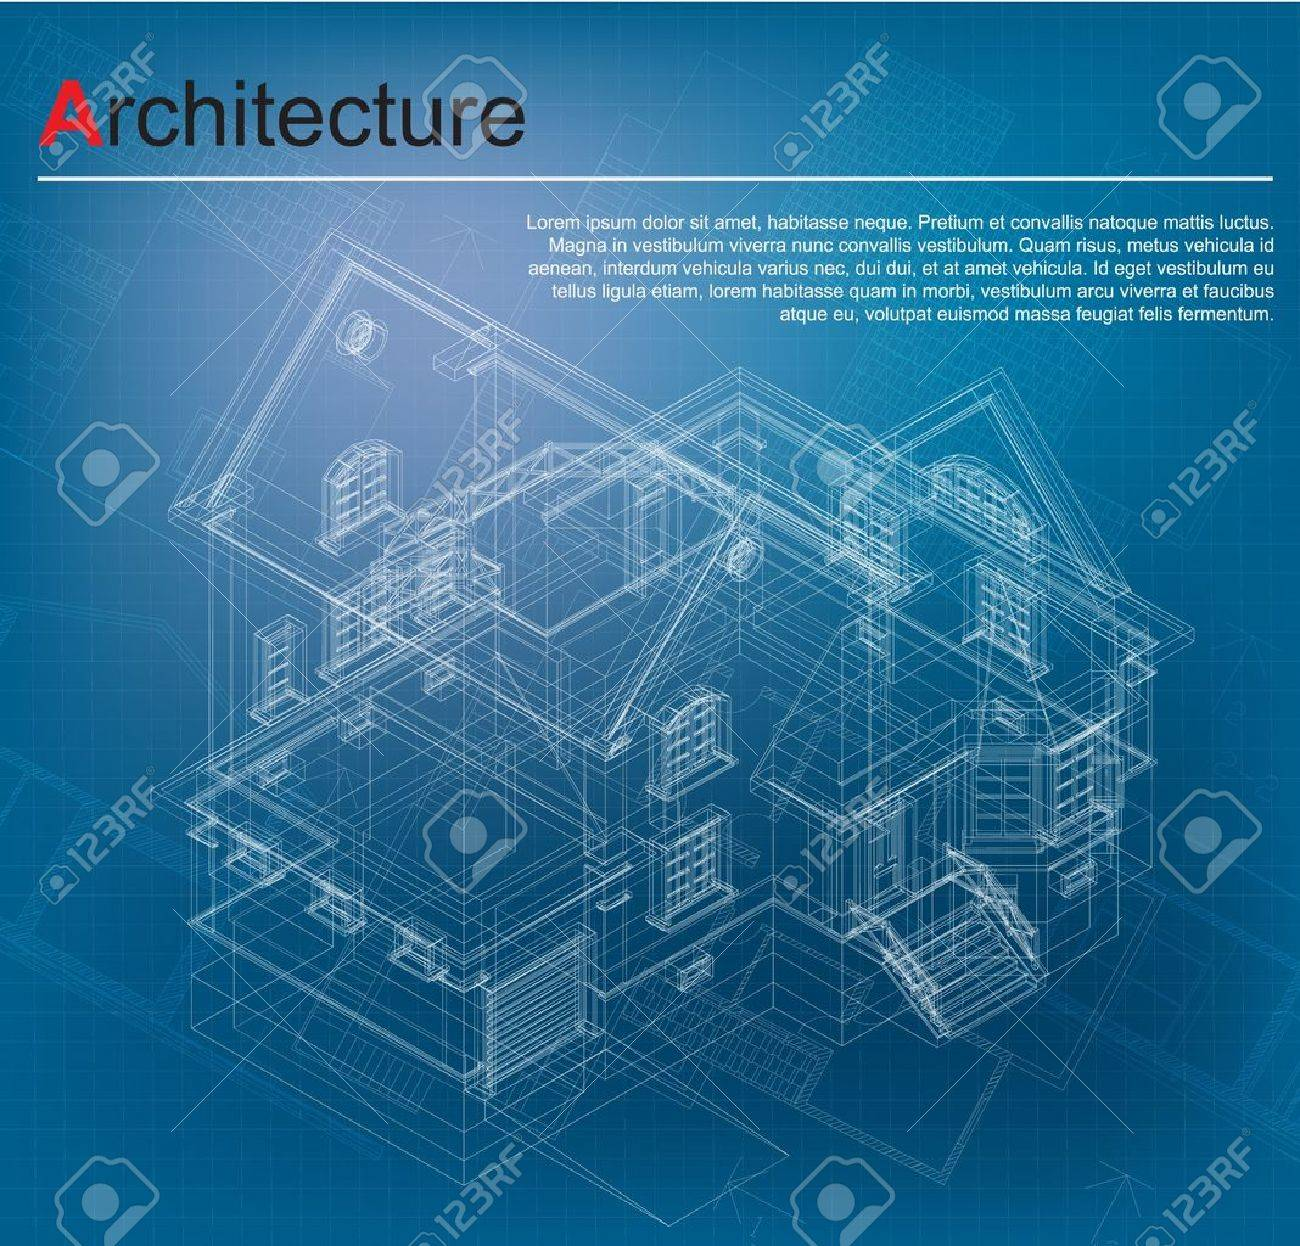 Plain Architecture Design Blueprint Abstract Futuristic